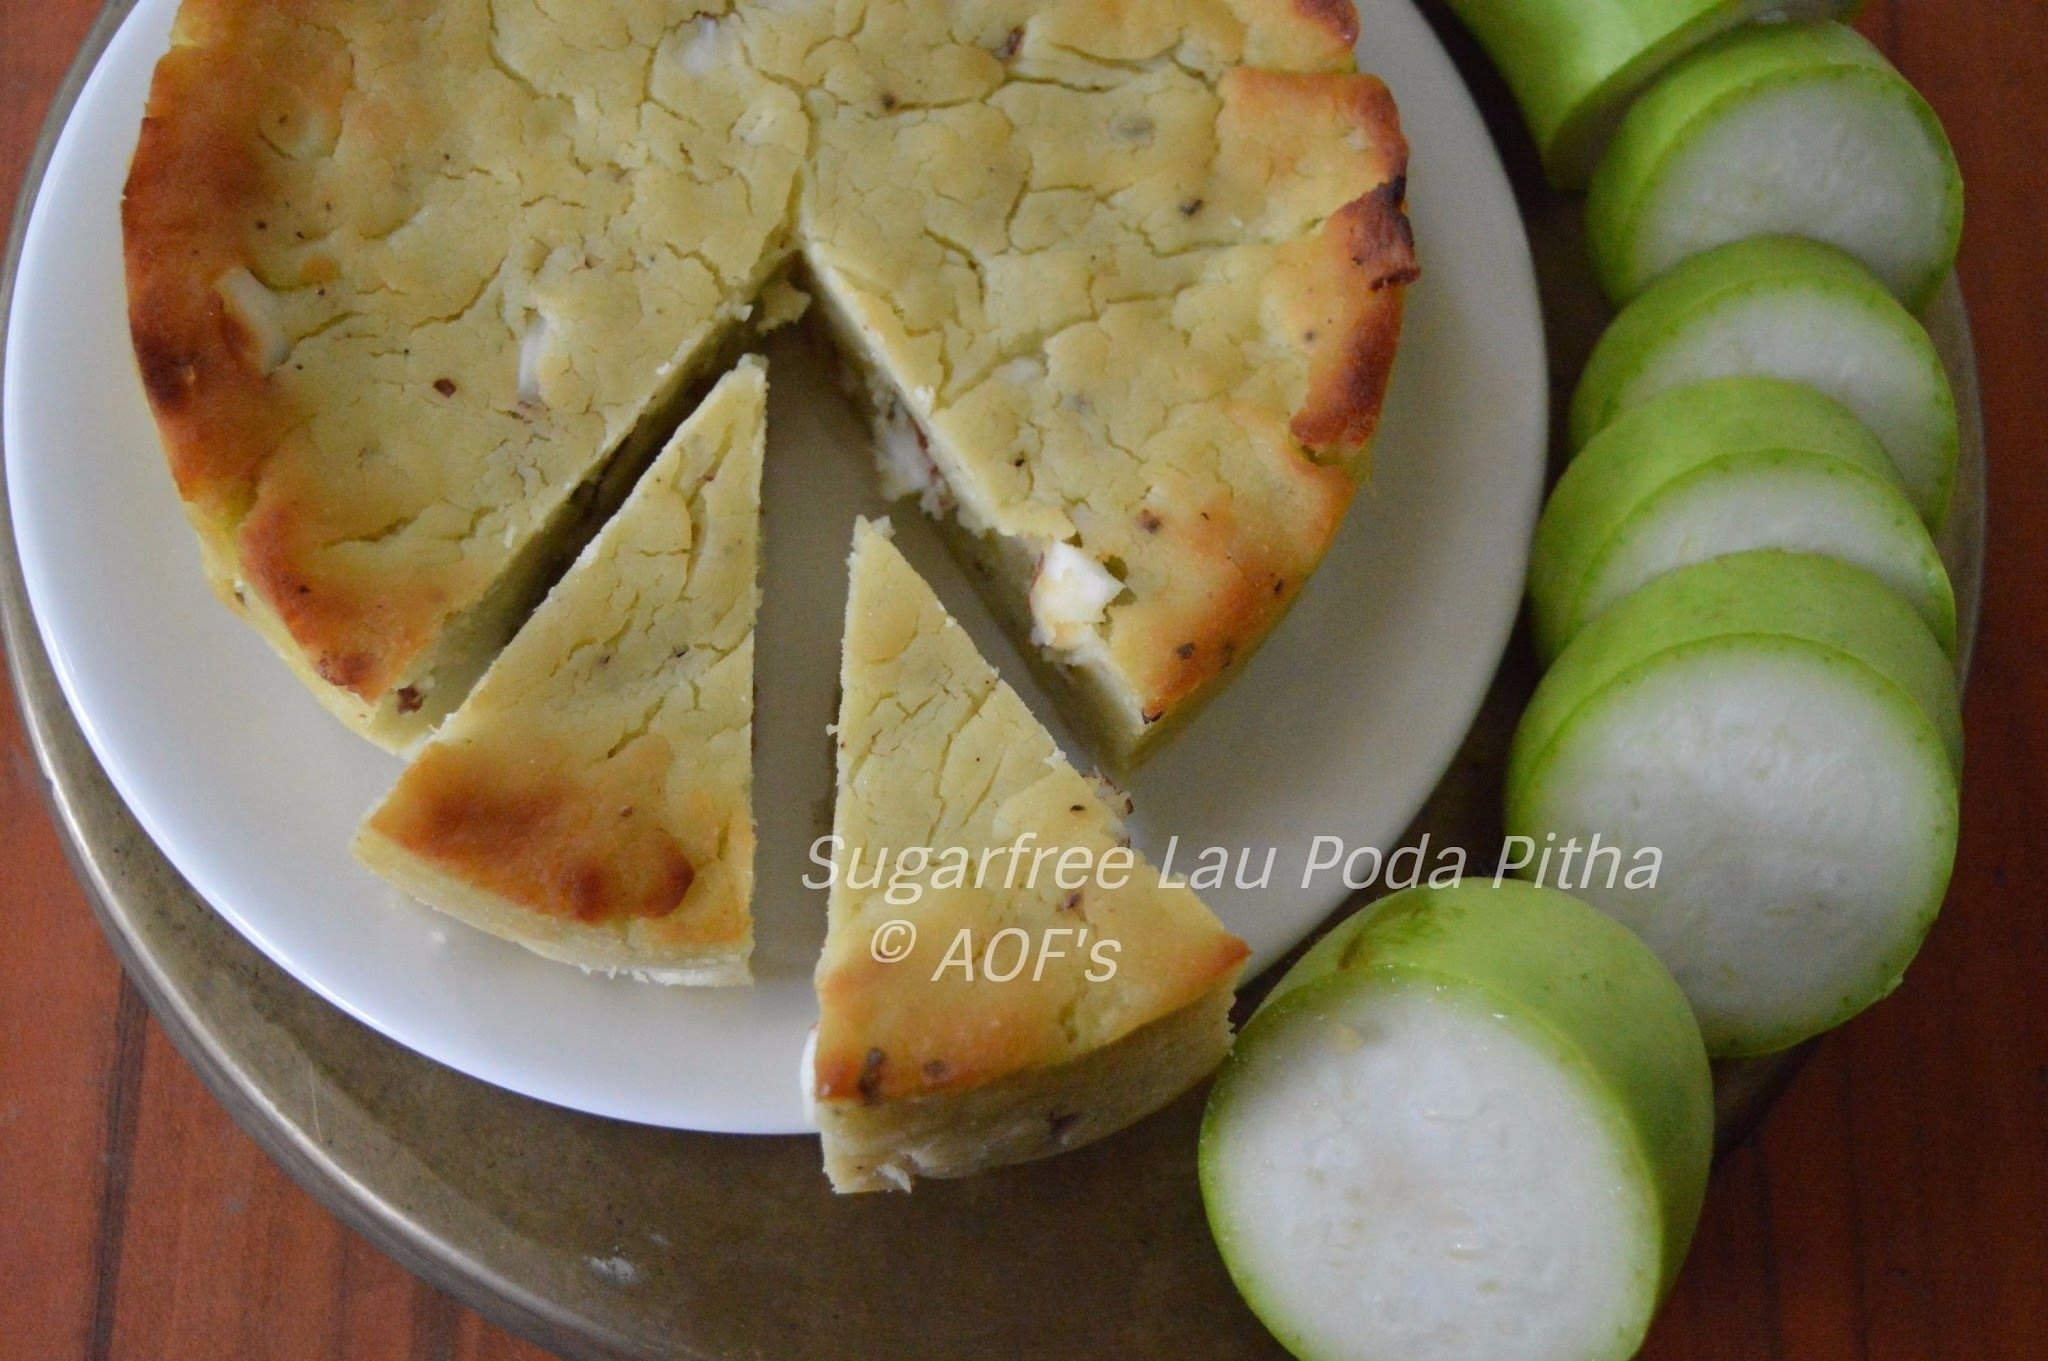 Sugarfree Lau Poda Pitha